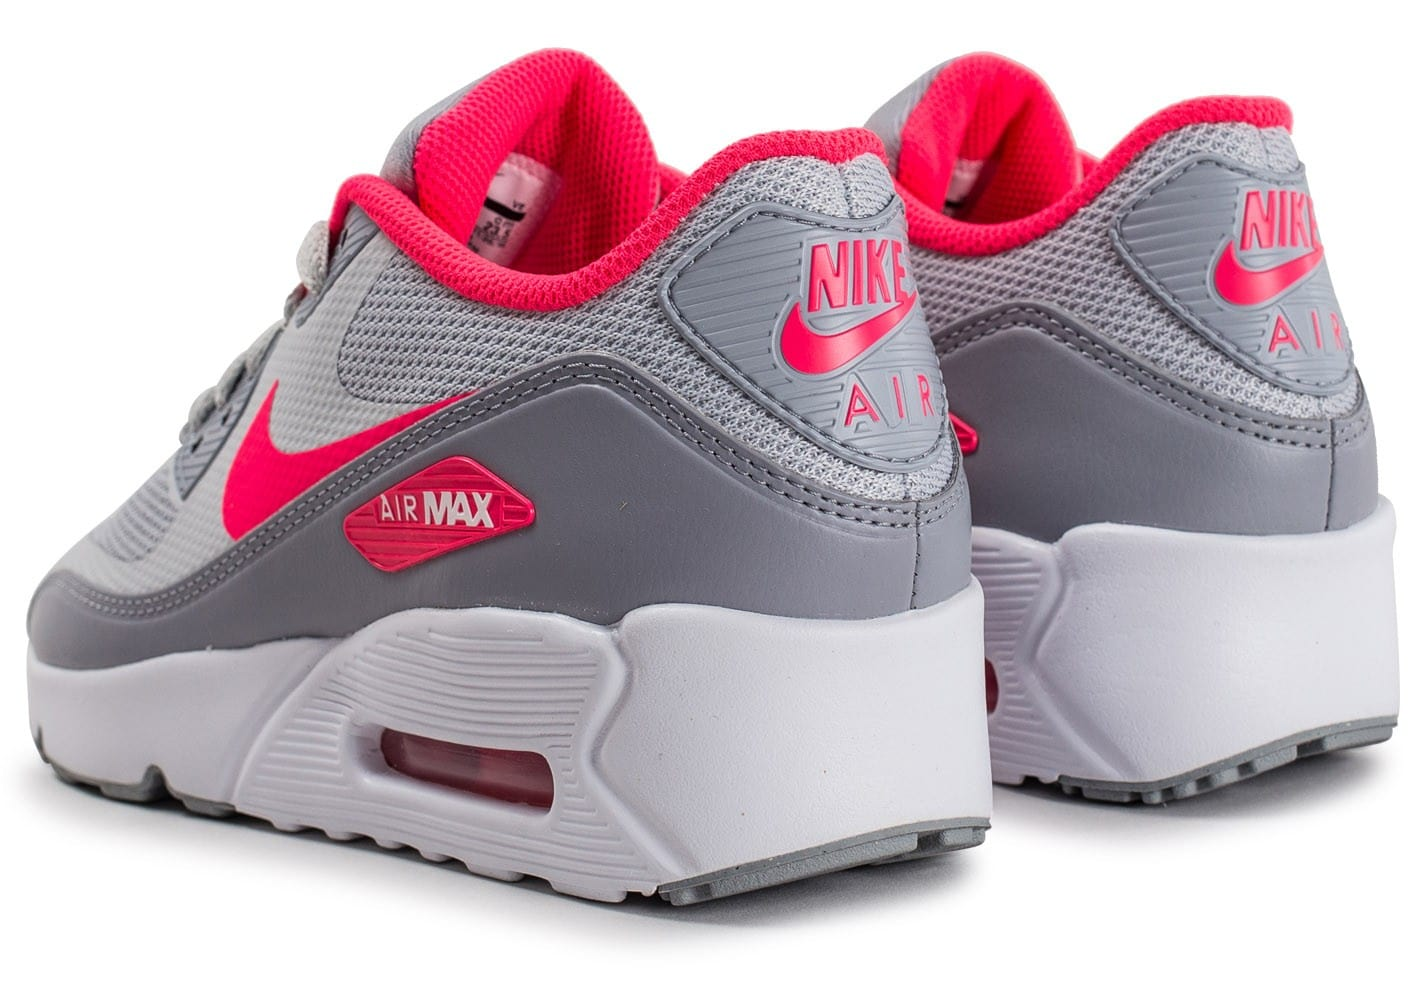 huge selection of 3c308 87909 ... Chaussures Nike Air Max 90 Ultra 2.0 Junior Pure Platinum et rose vue  dessous ...